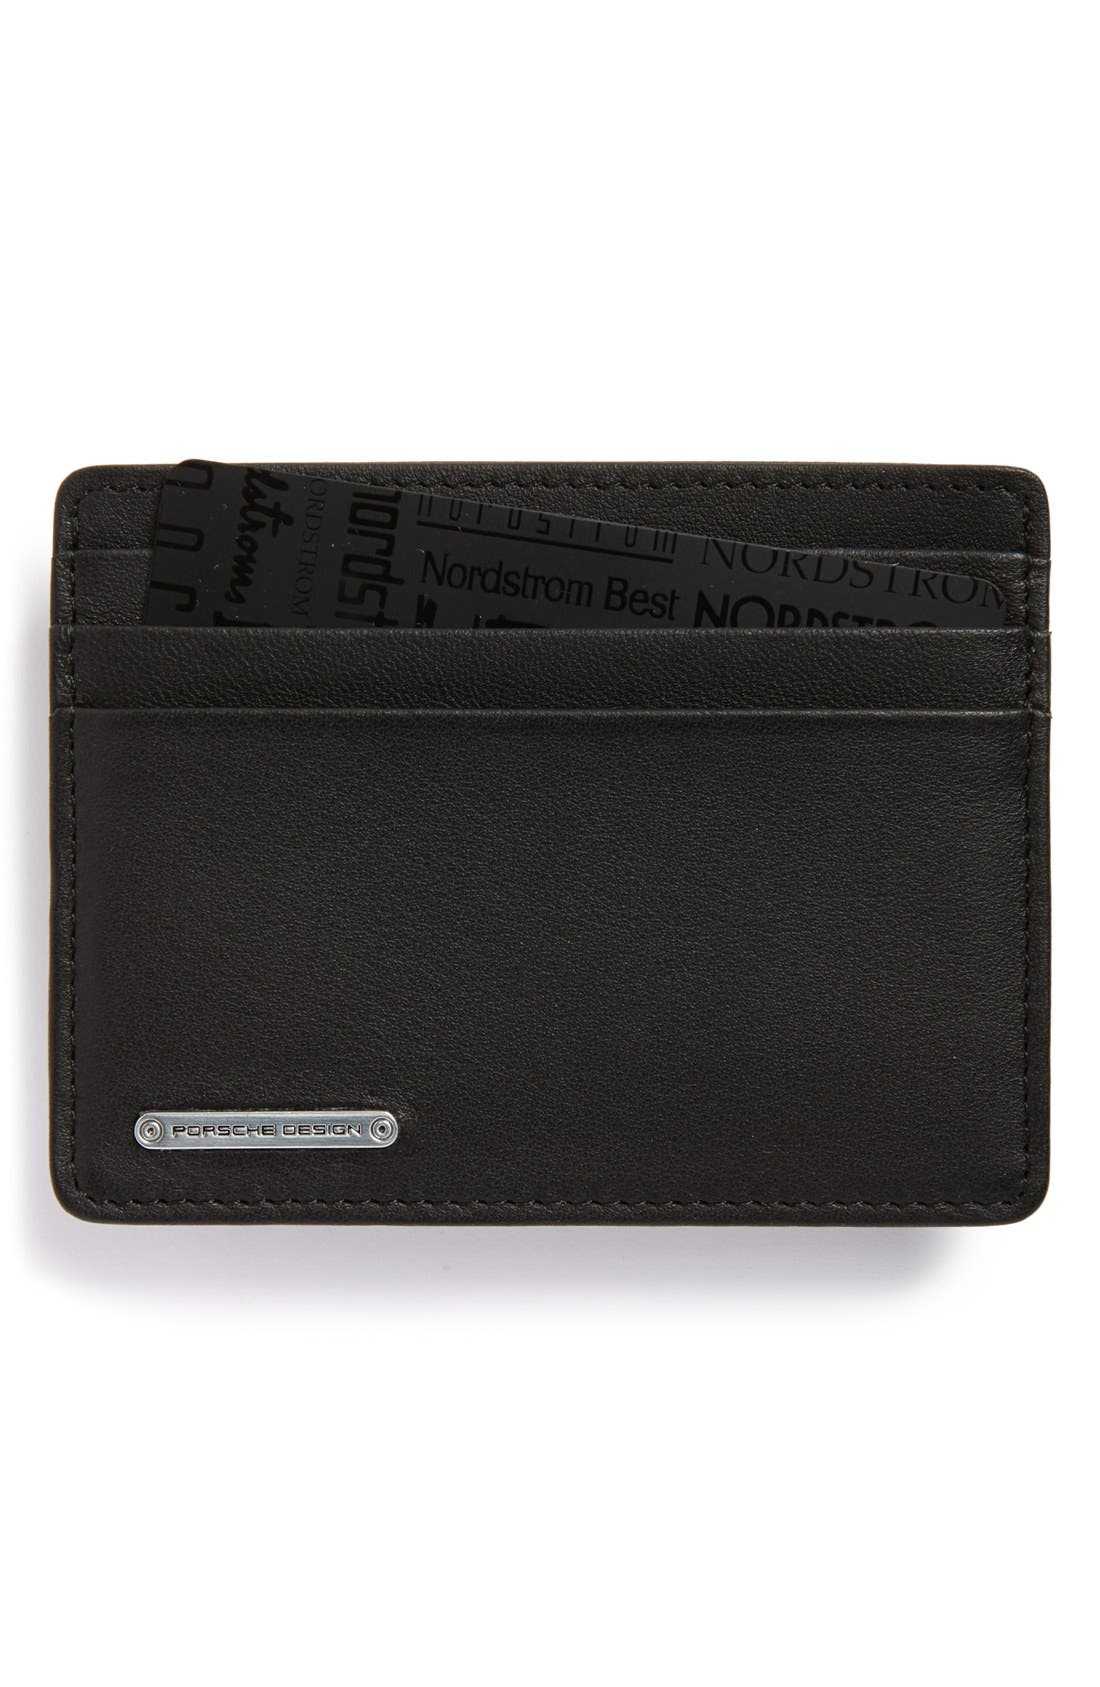 Leather Cardholder,                             Main thumbnail 1, color,                             001